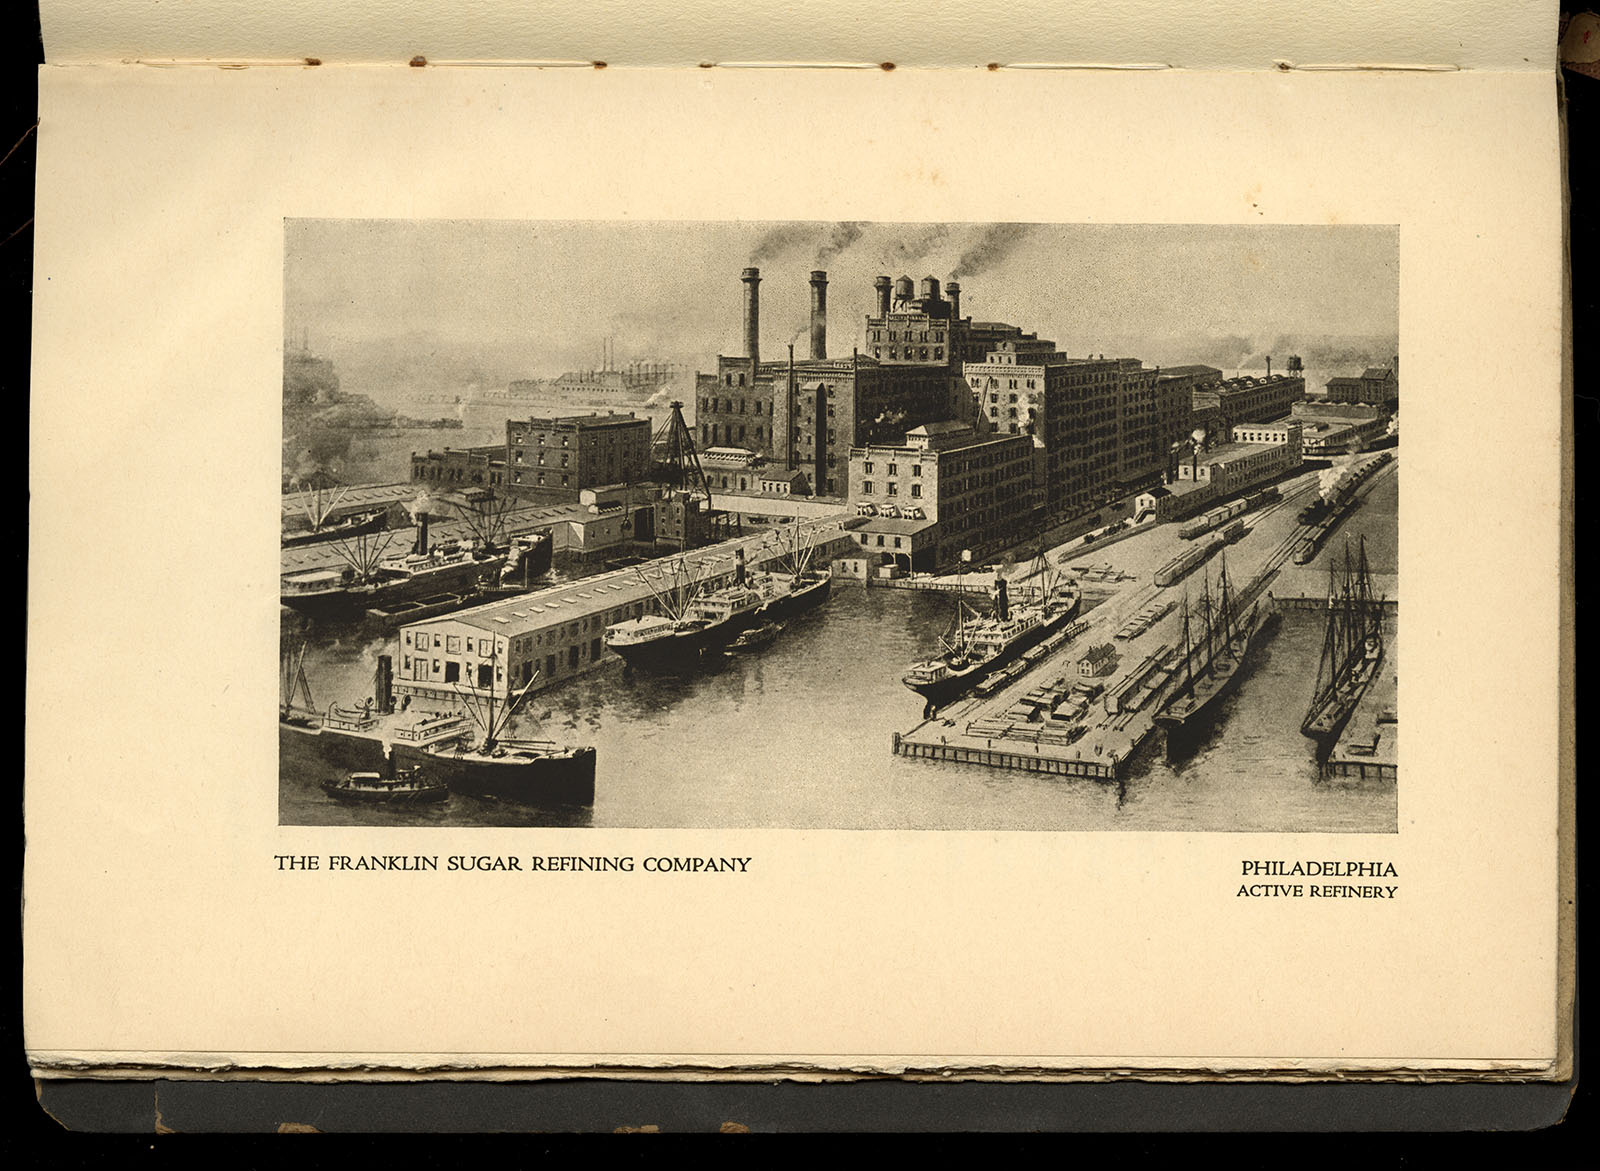 American Sugar Refining Company, A Century of Sugar Refining in the United States, 1816-1916 (New York, 1916). Gift of the author.